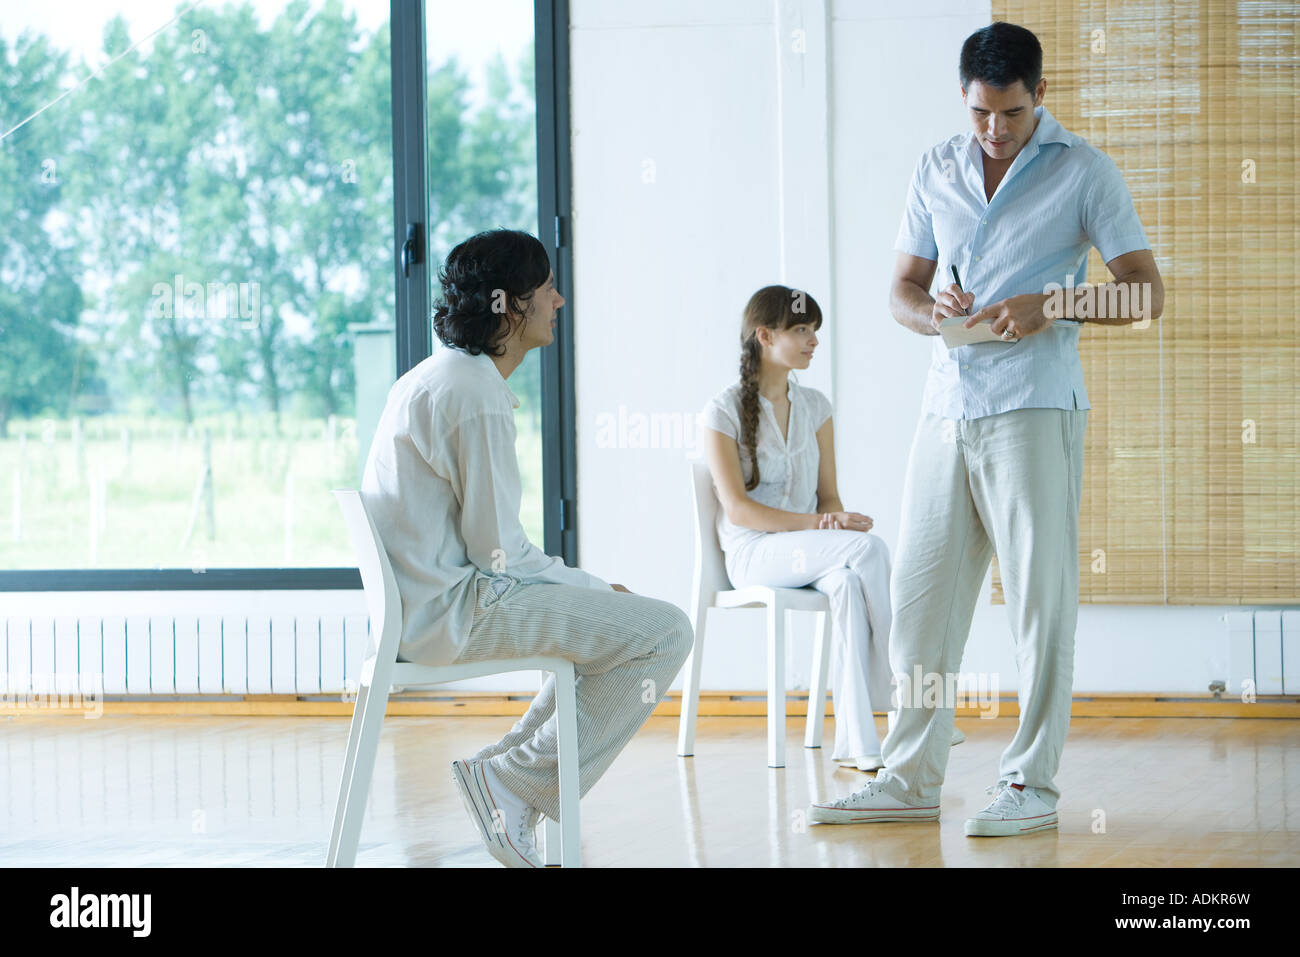 Group therapy, two adults sitting while one man stands, writing on notepad - Stock Image